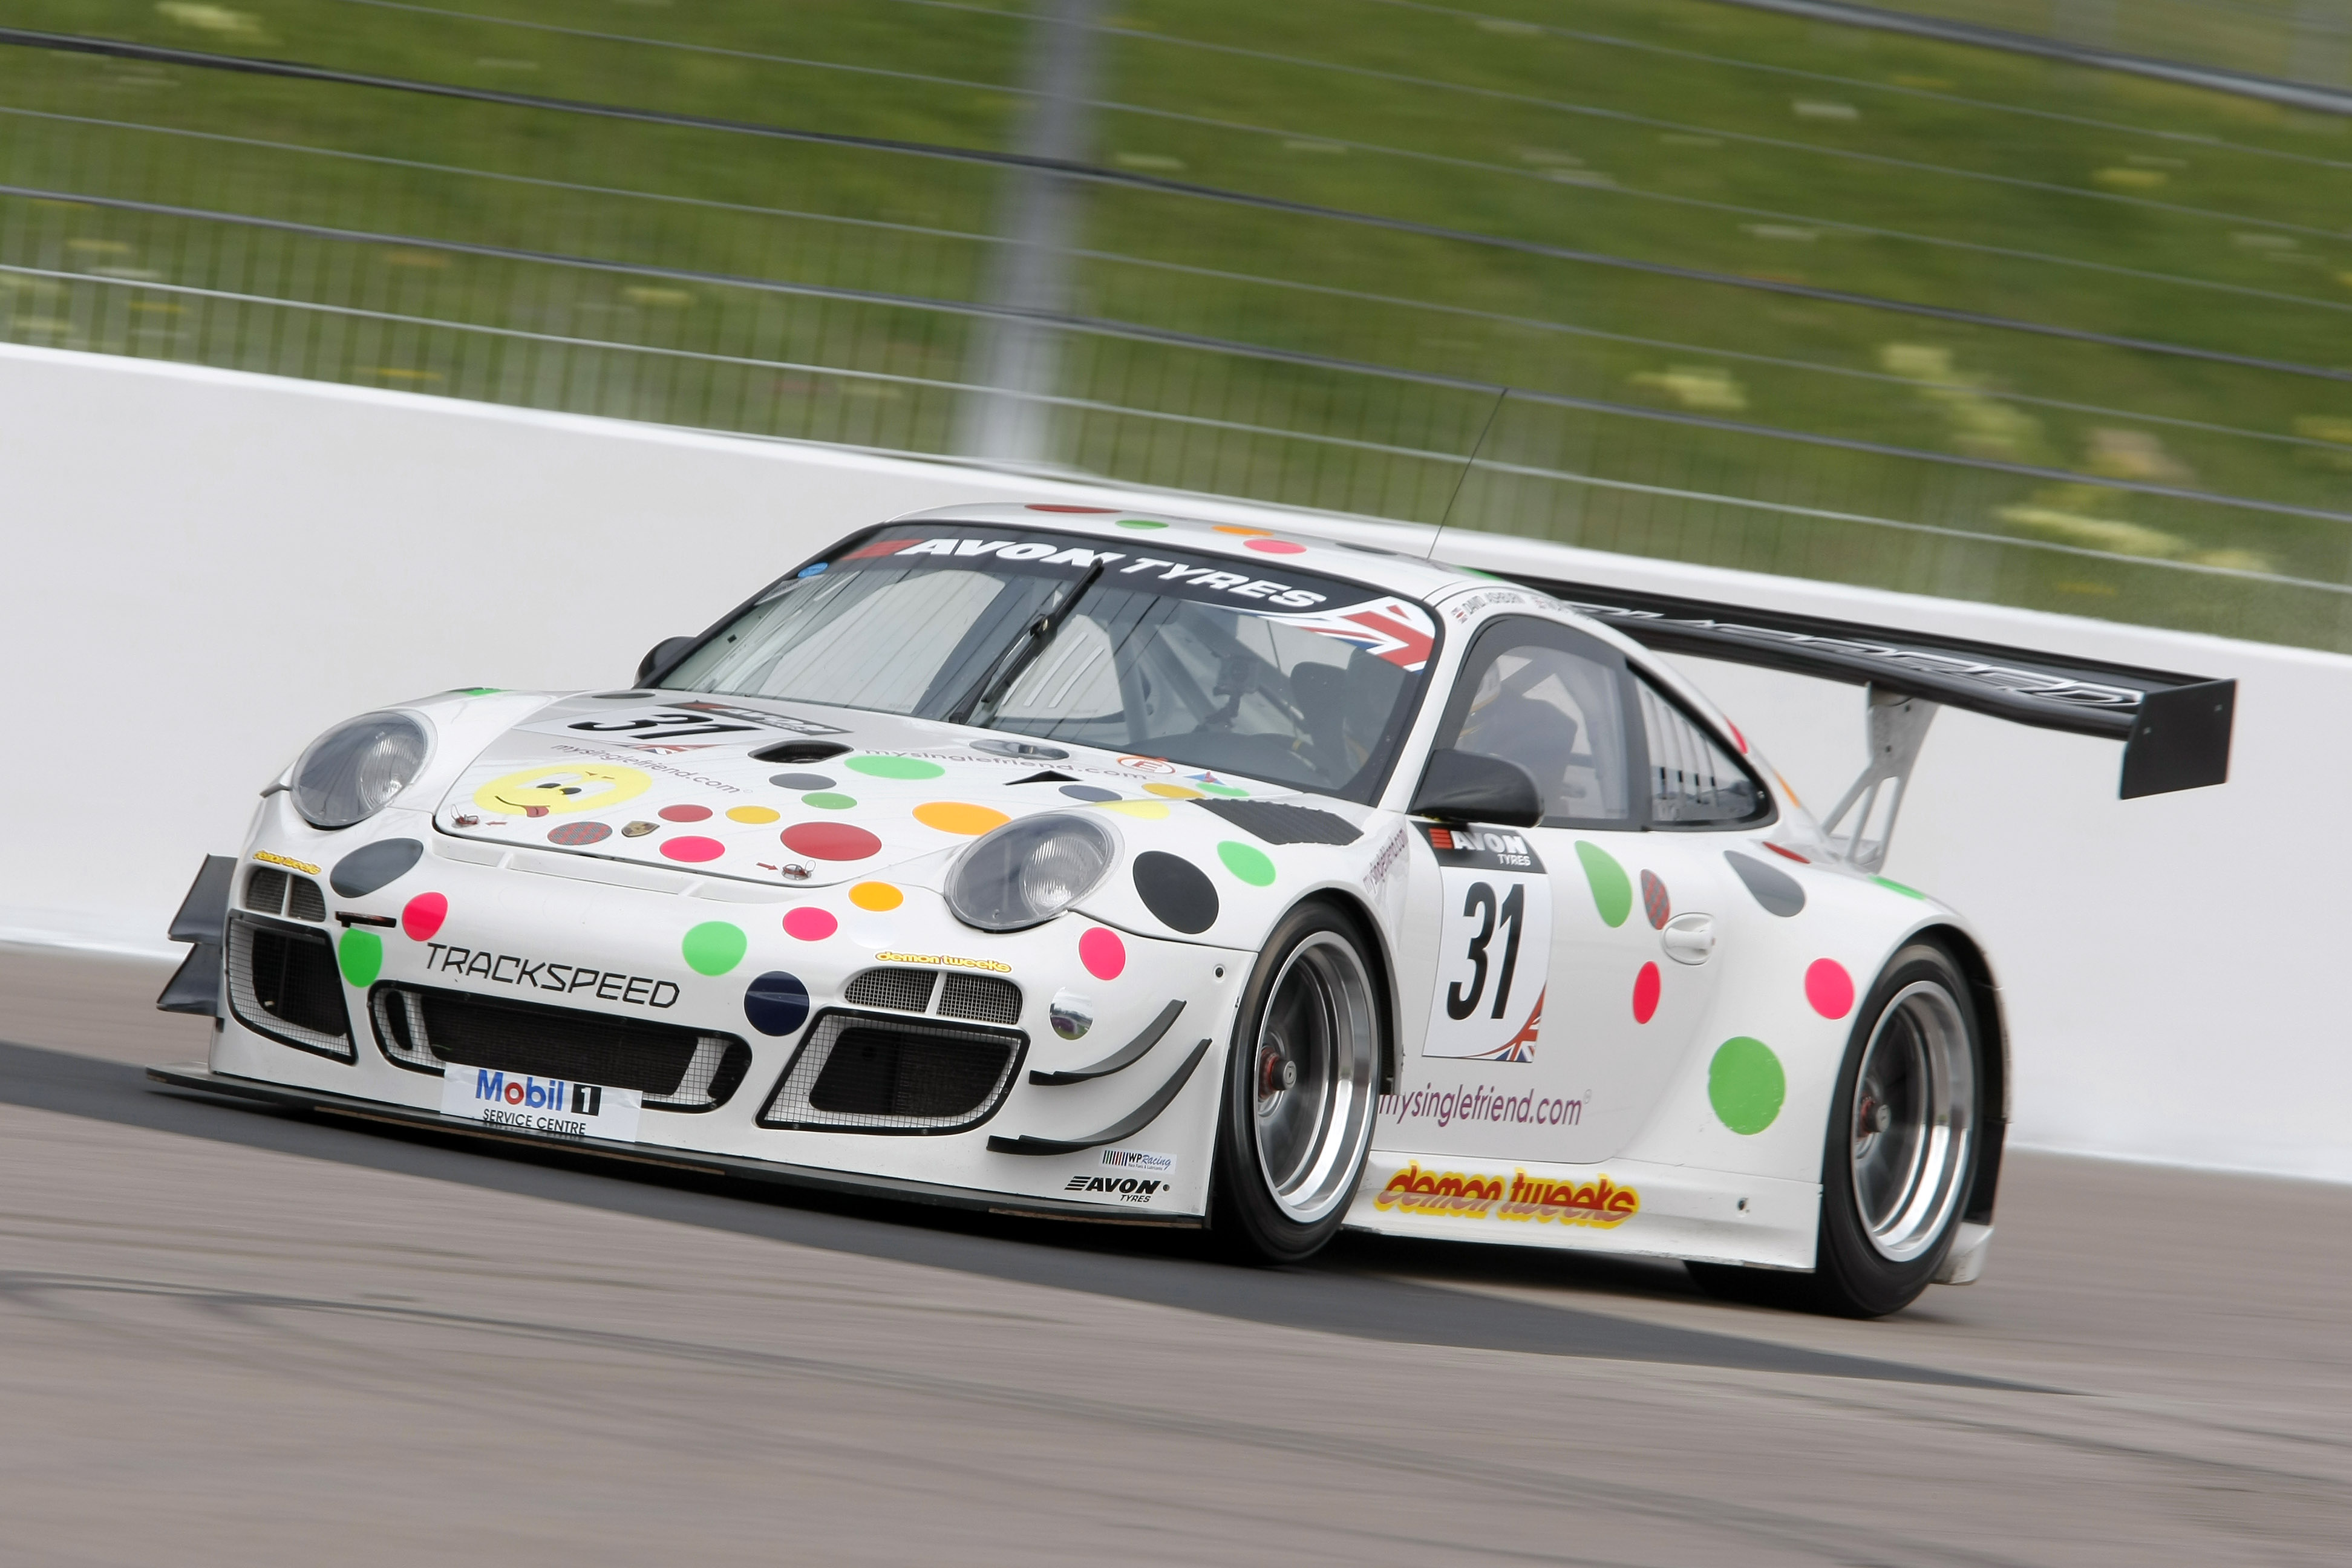 David Ashburn / Nick Tandy Trackspeed Porsche 997 GT3R